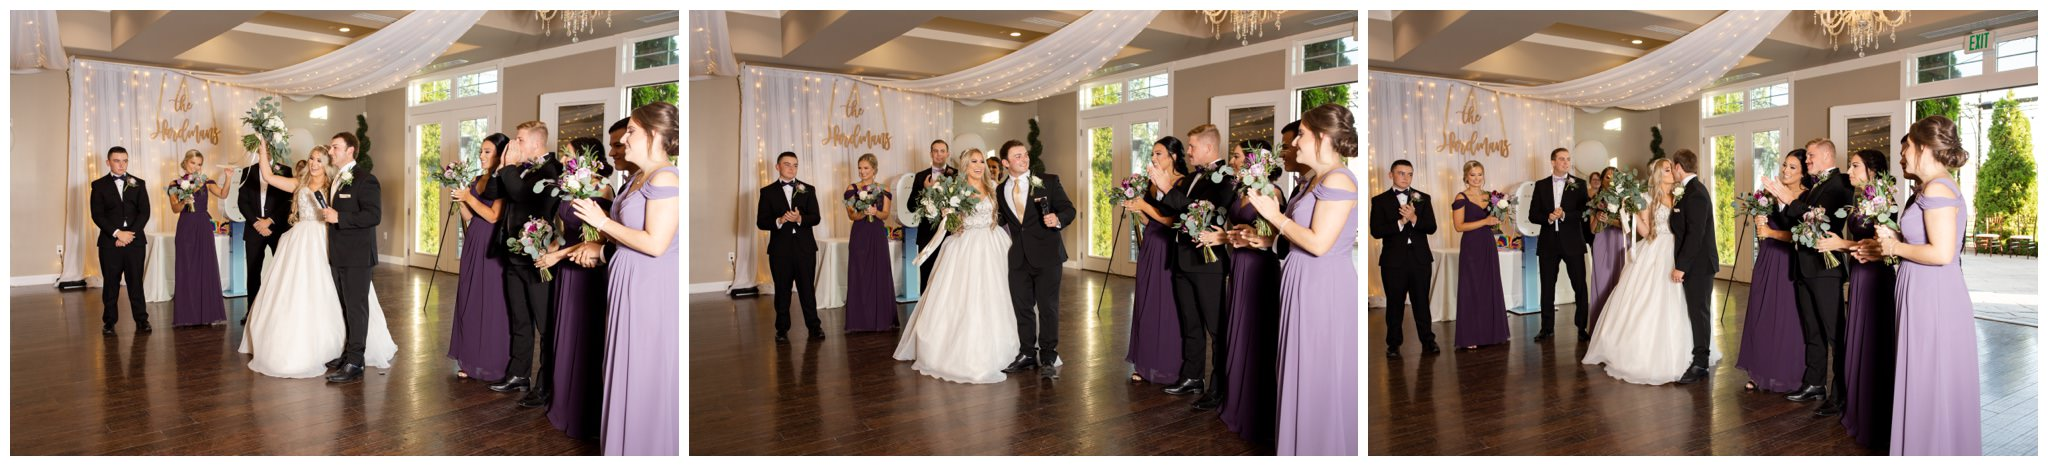 Bride and groom greeting guest at venue